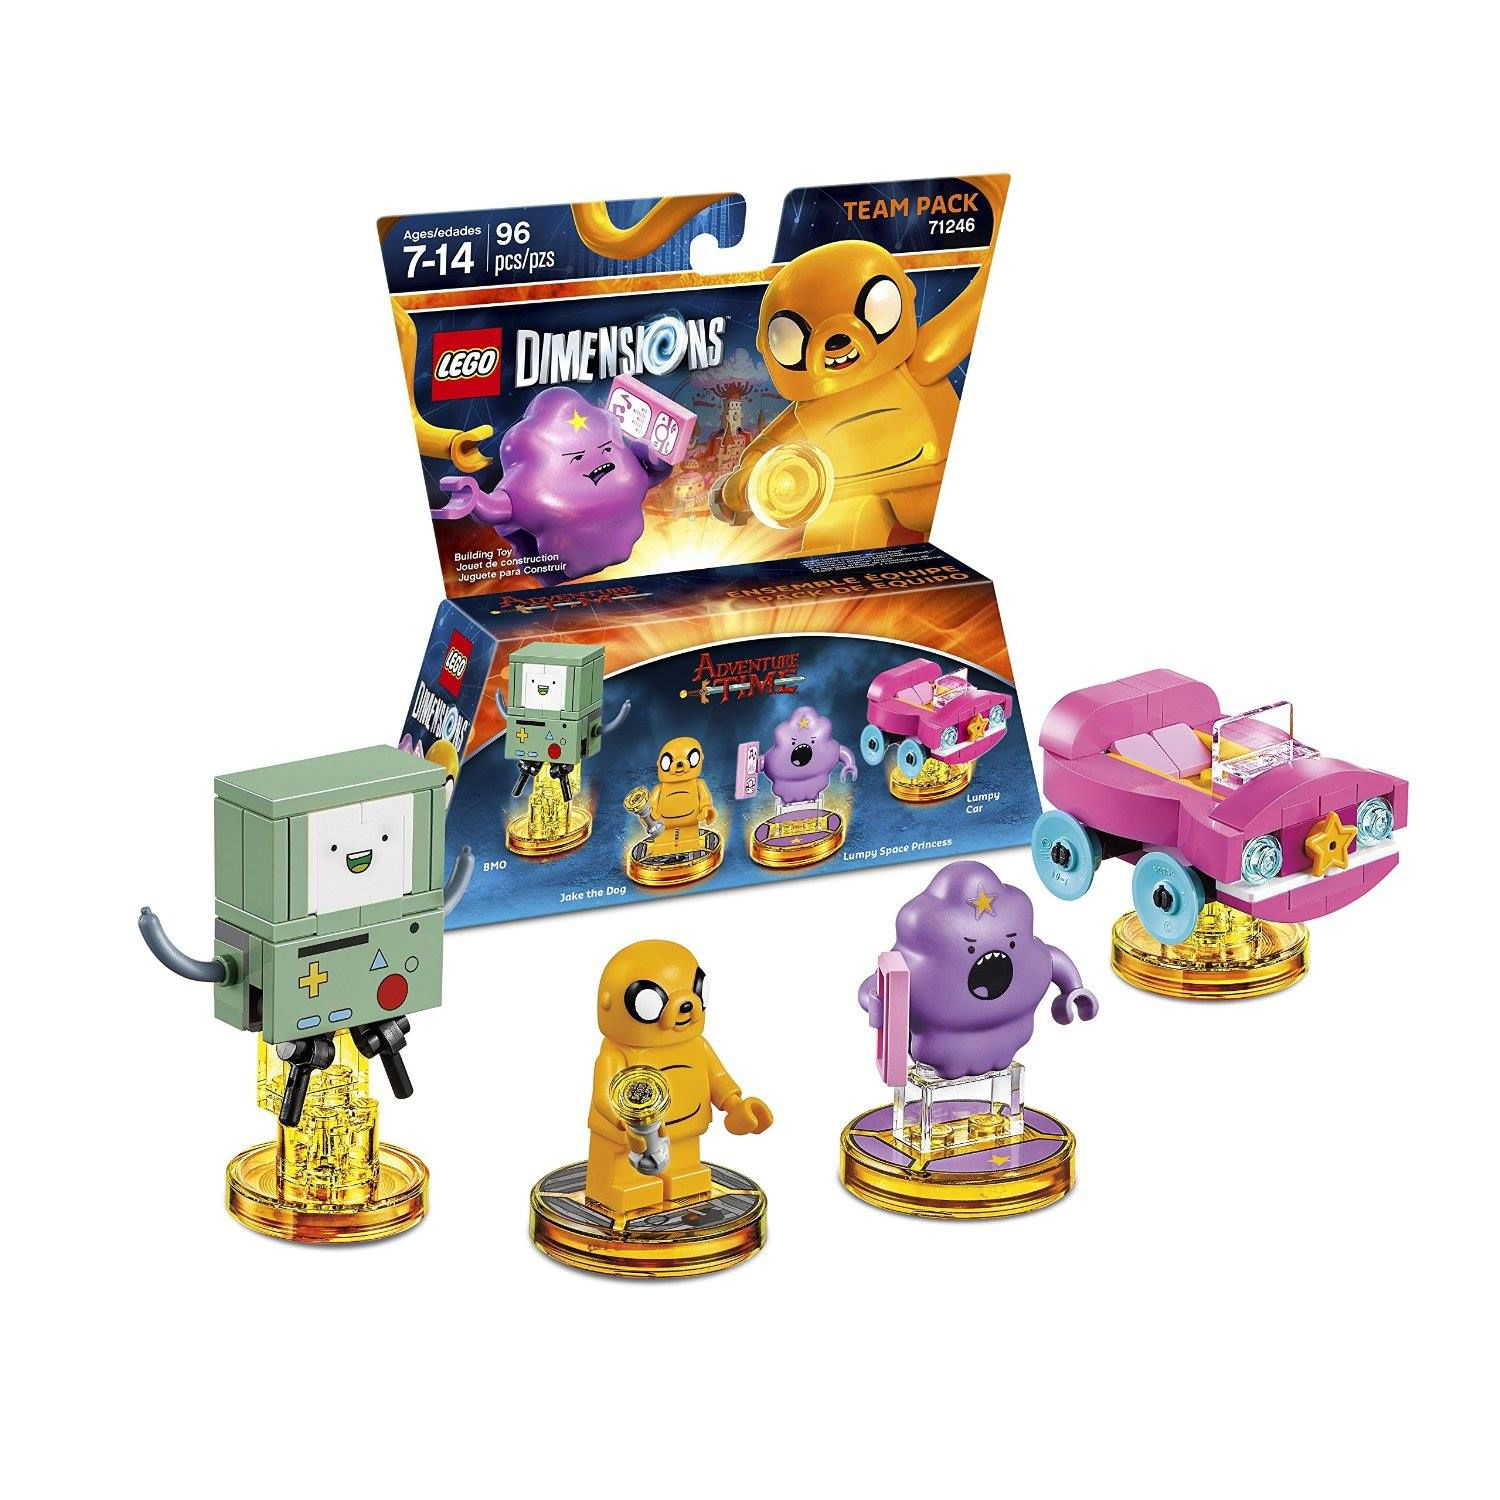 LEGO Dimensions 71246 Team Pack Adventure Time LEGO_DIMENSIONS_71246_Adventure-Time-01.jpg